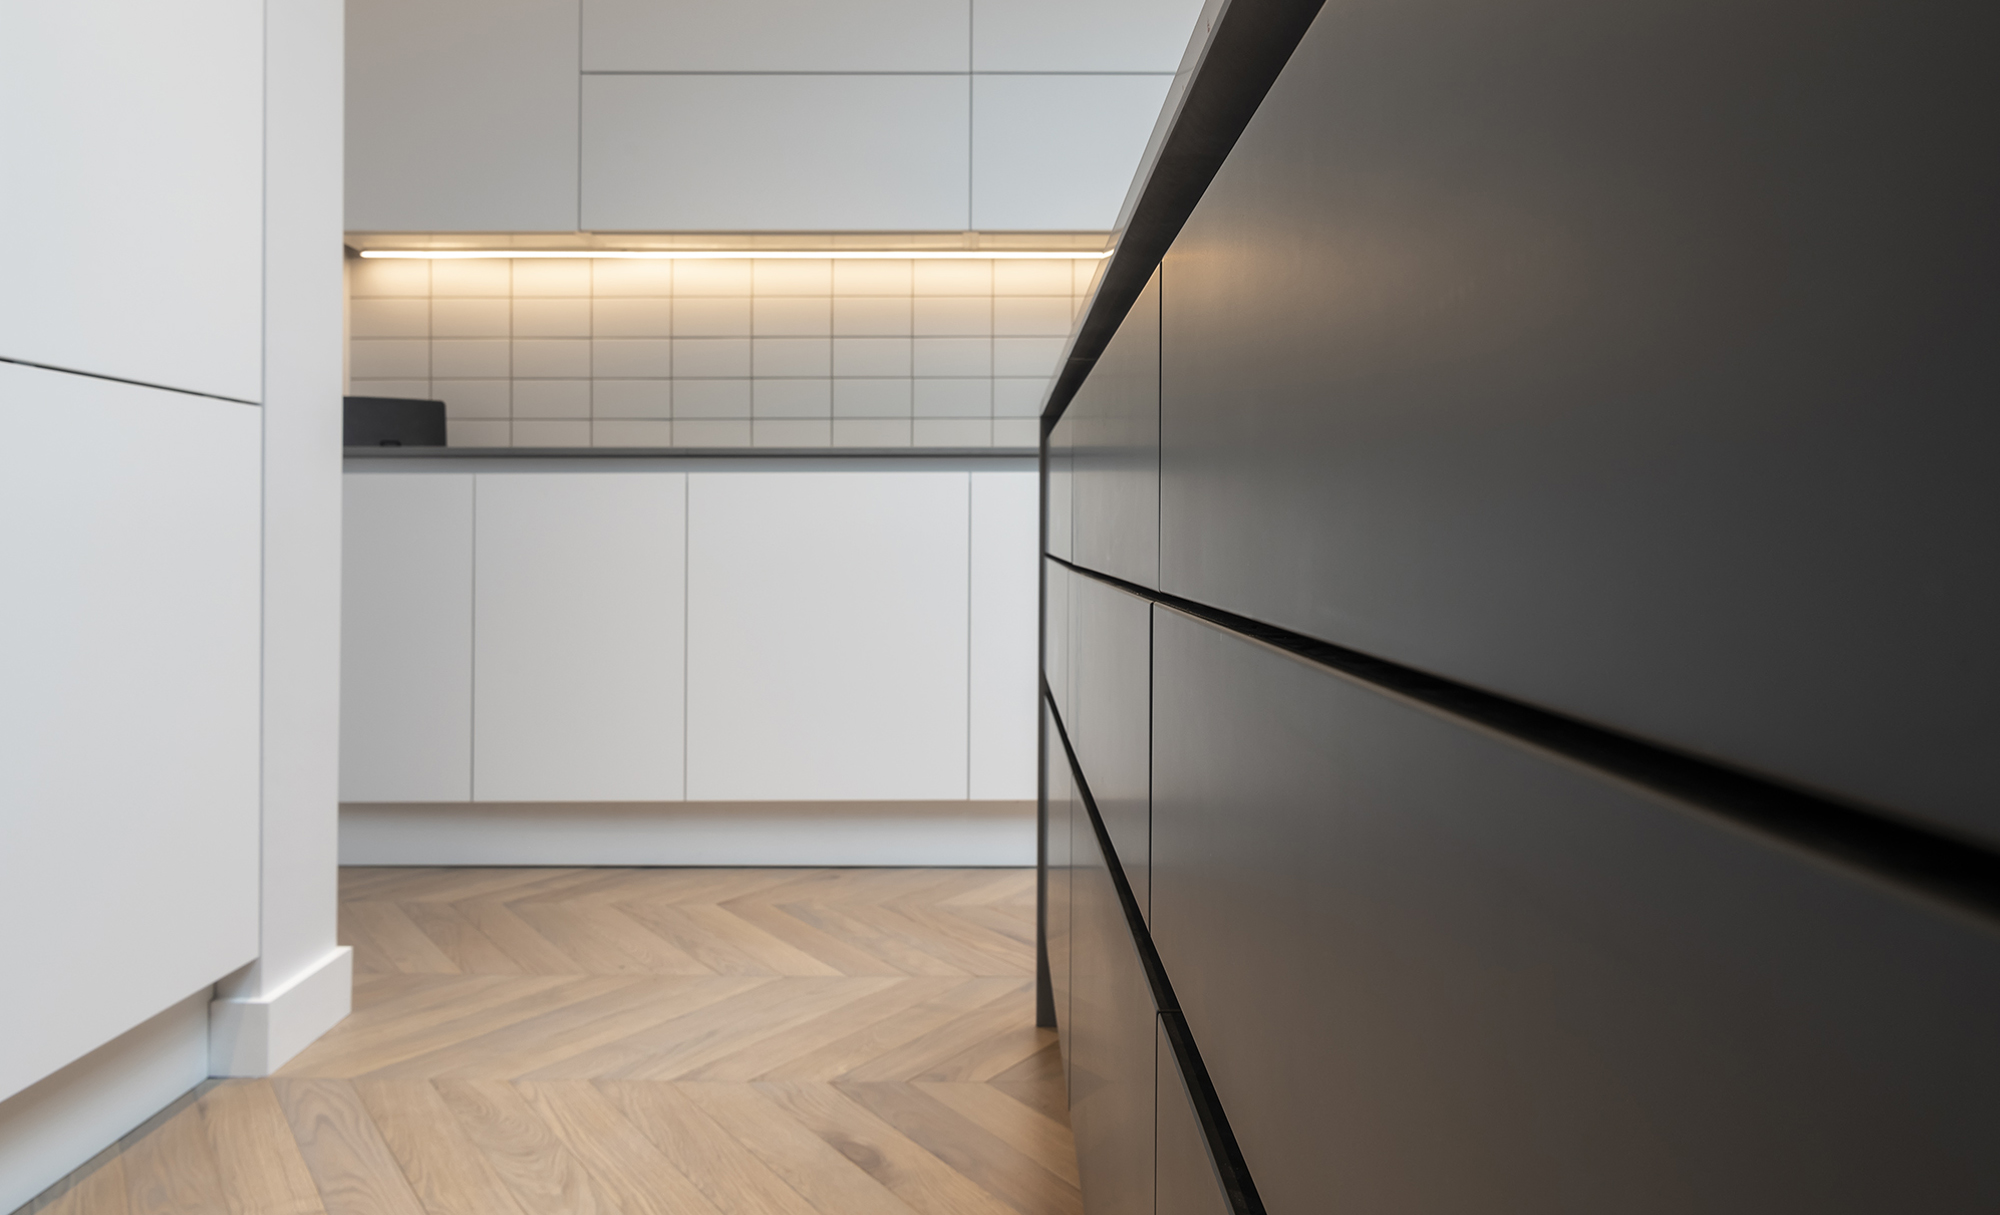 Portishead Zola Matte Almost Black & White Kitchen for a home in North Somerset 3